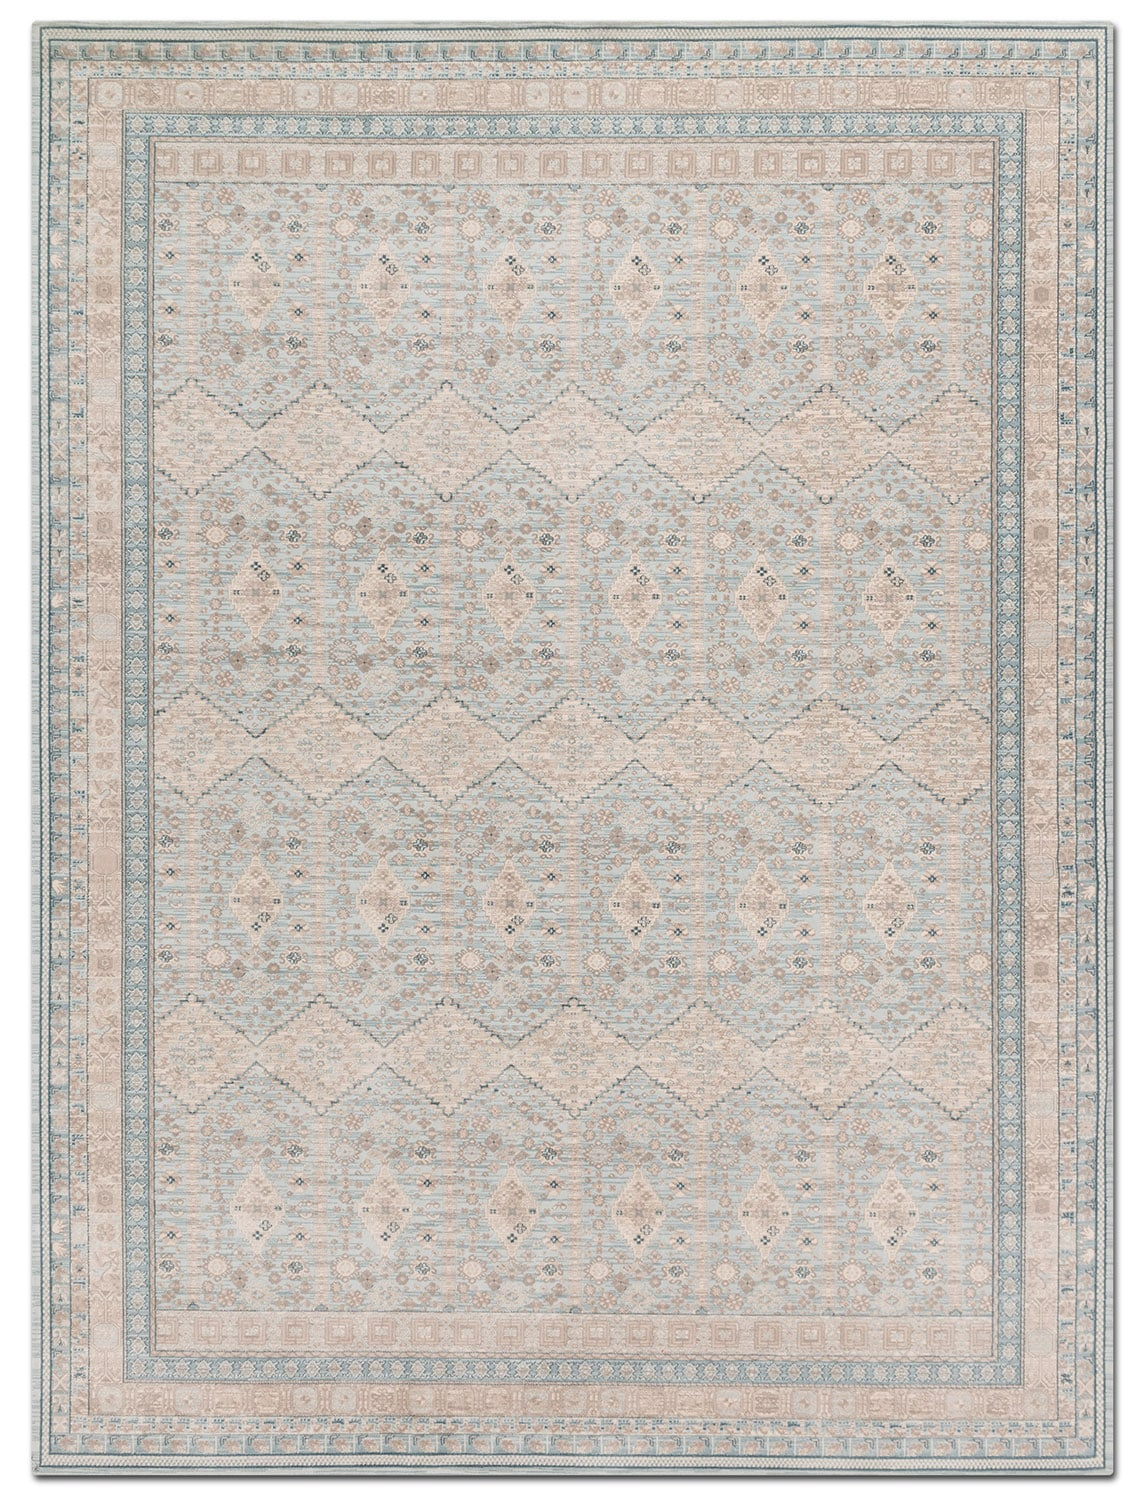 Ella Rose 5' x 8' Rug - Mist and Stone